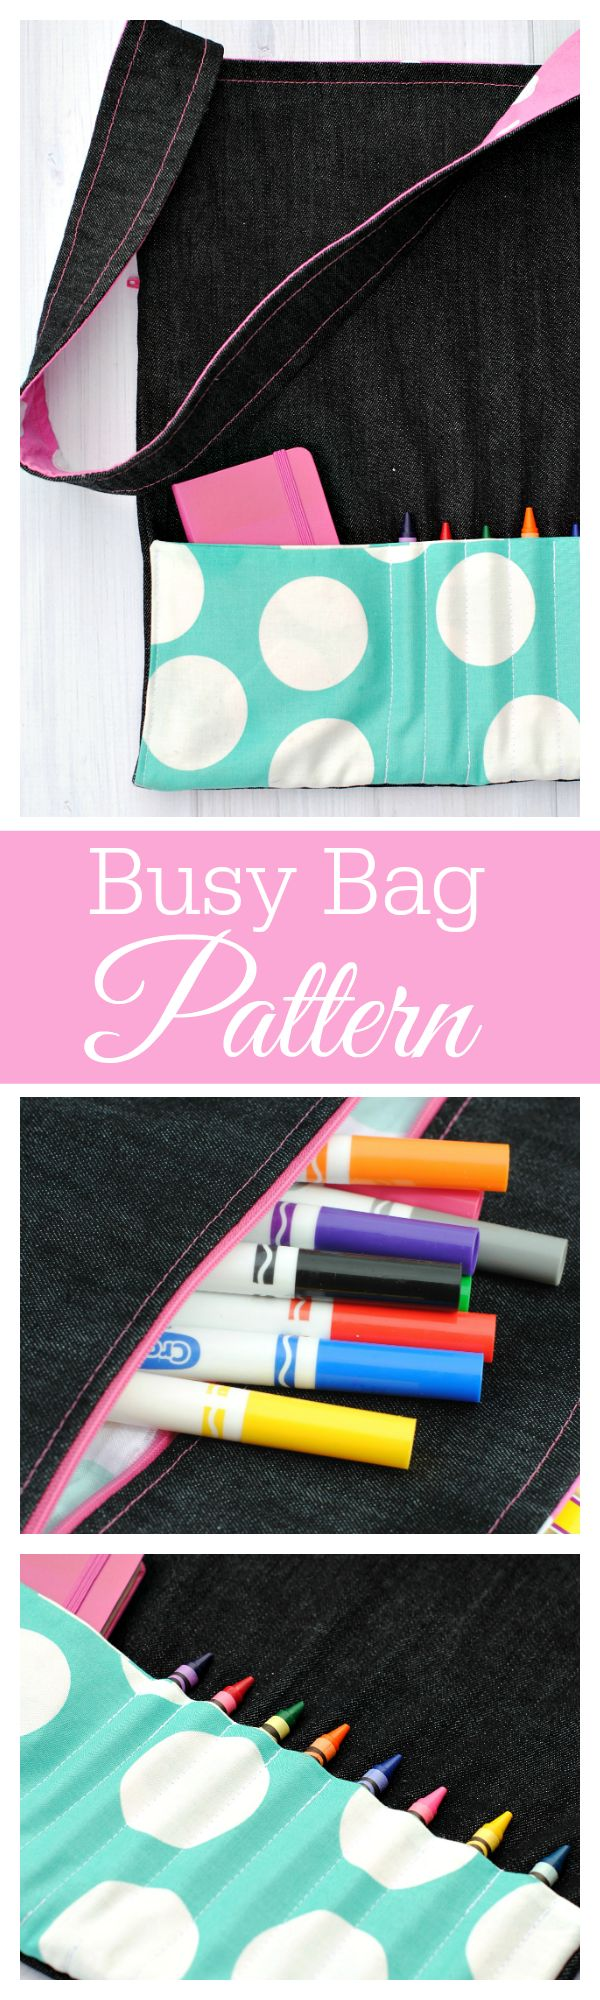 This cute Busy Bag Tutorial holds crayons, toys, coloring books and anything else little one needs.